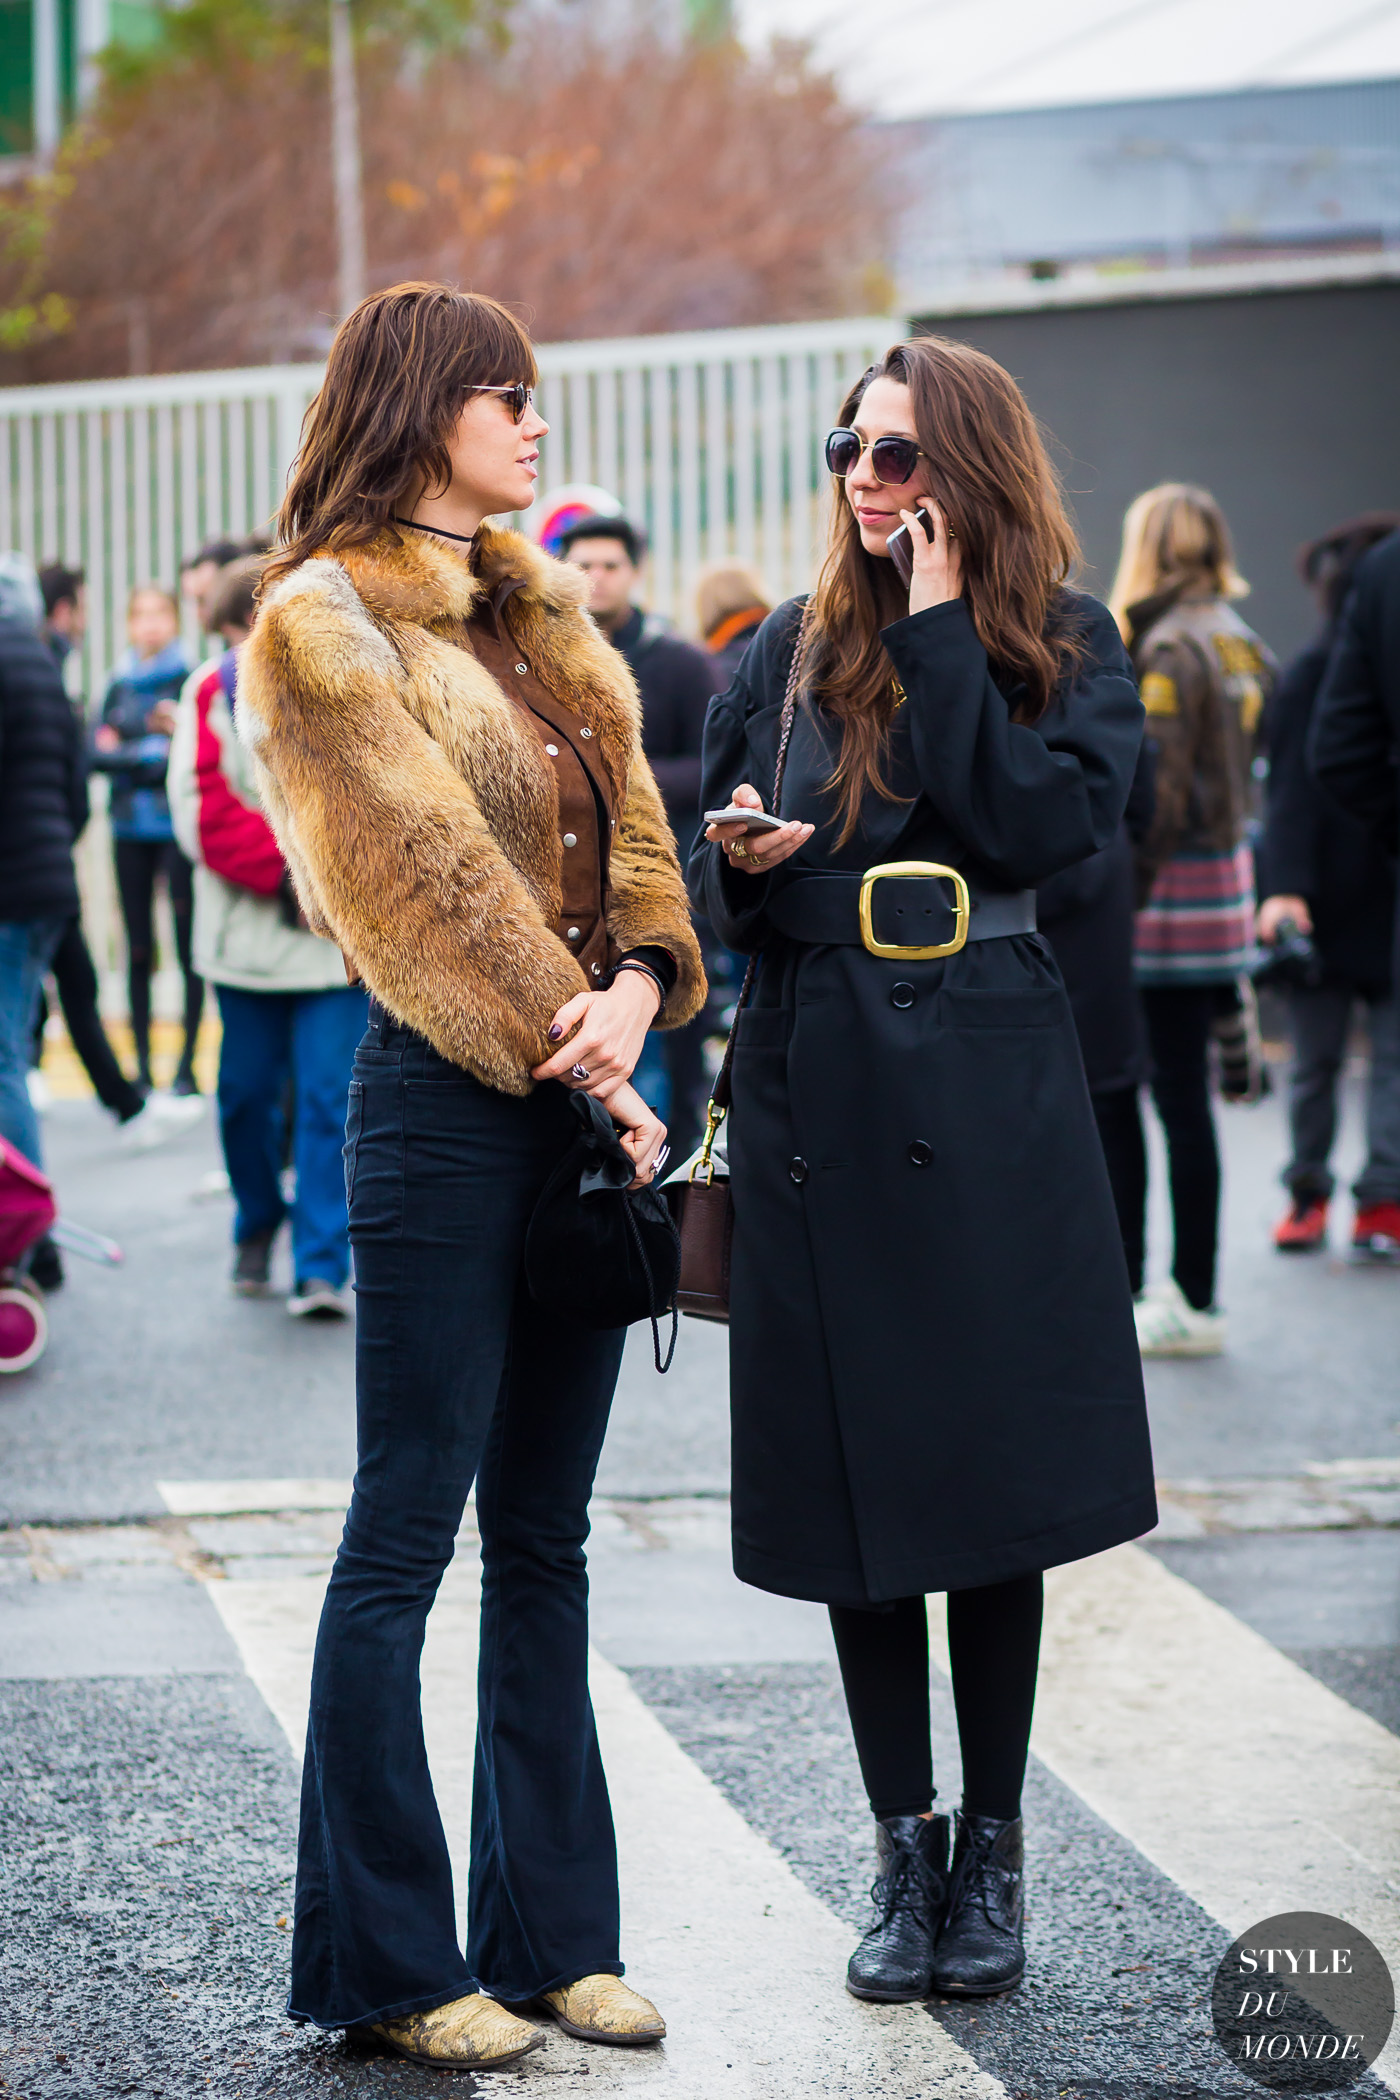 After Lanvin Street Style Street Fashion Streetsnaps by STYLEDUMONDE Street Style Fashion Photography